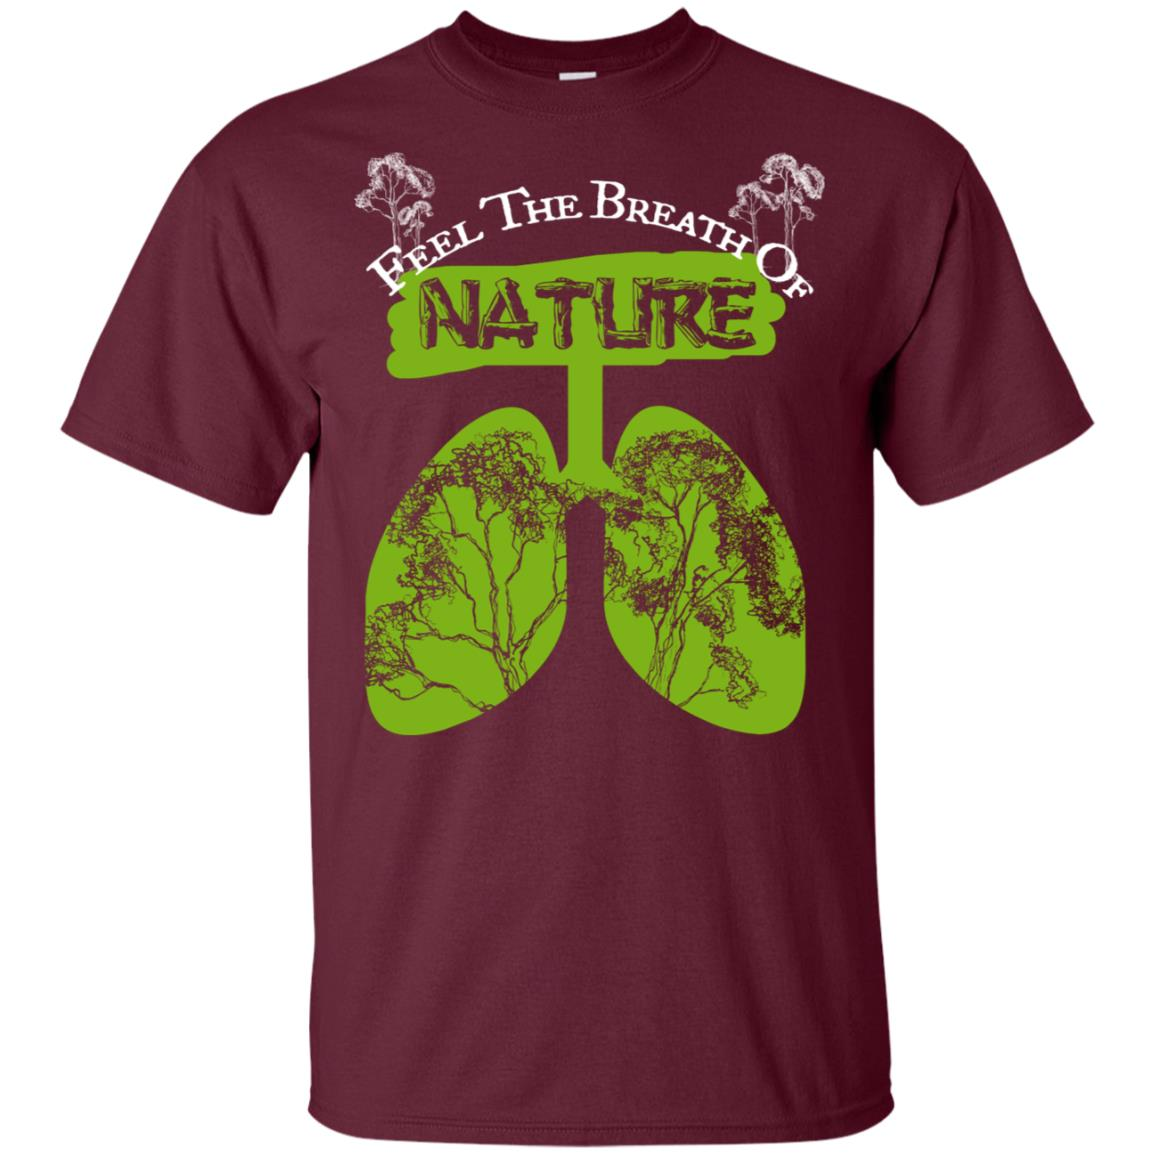 Feel Breath Of Nature Forest Camping & Outdoor Unisex Short Sleeve